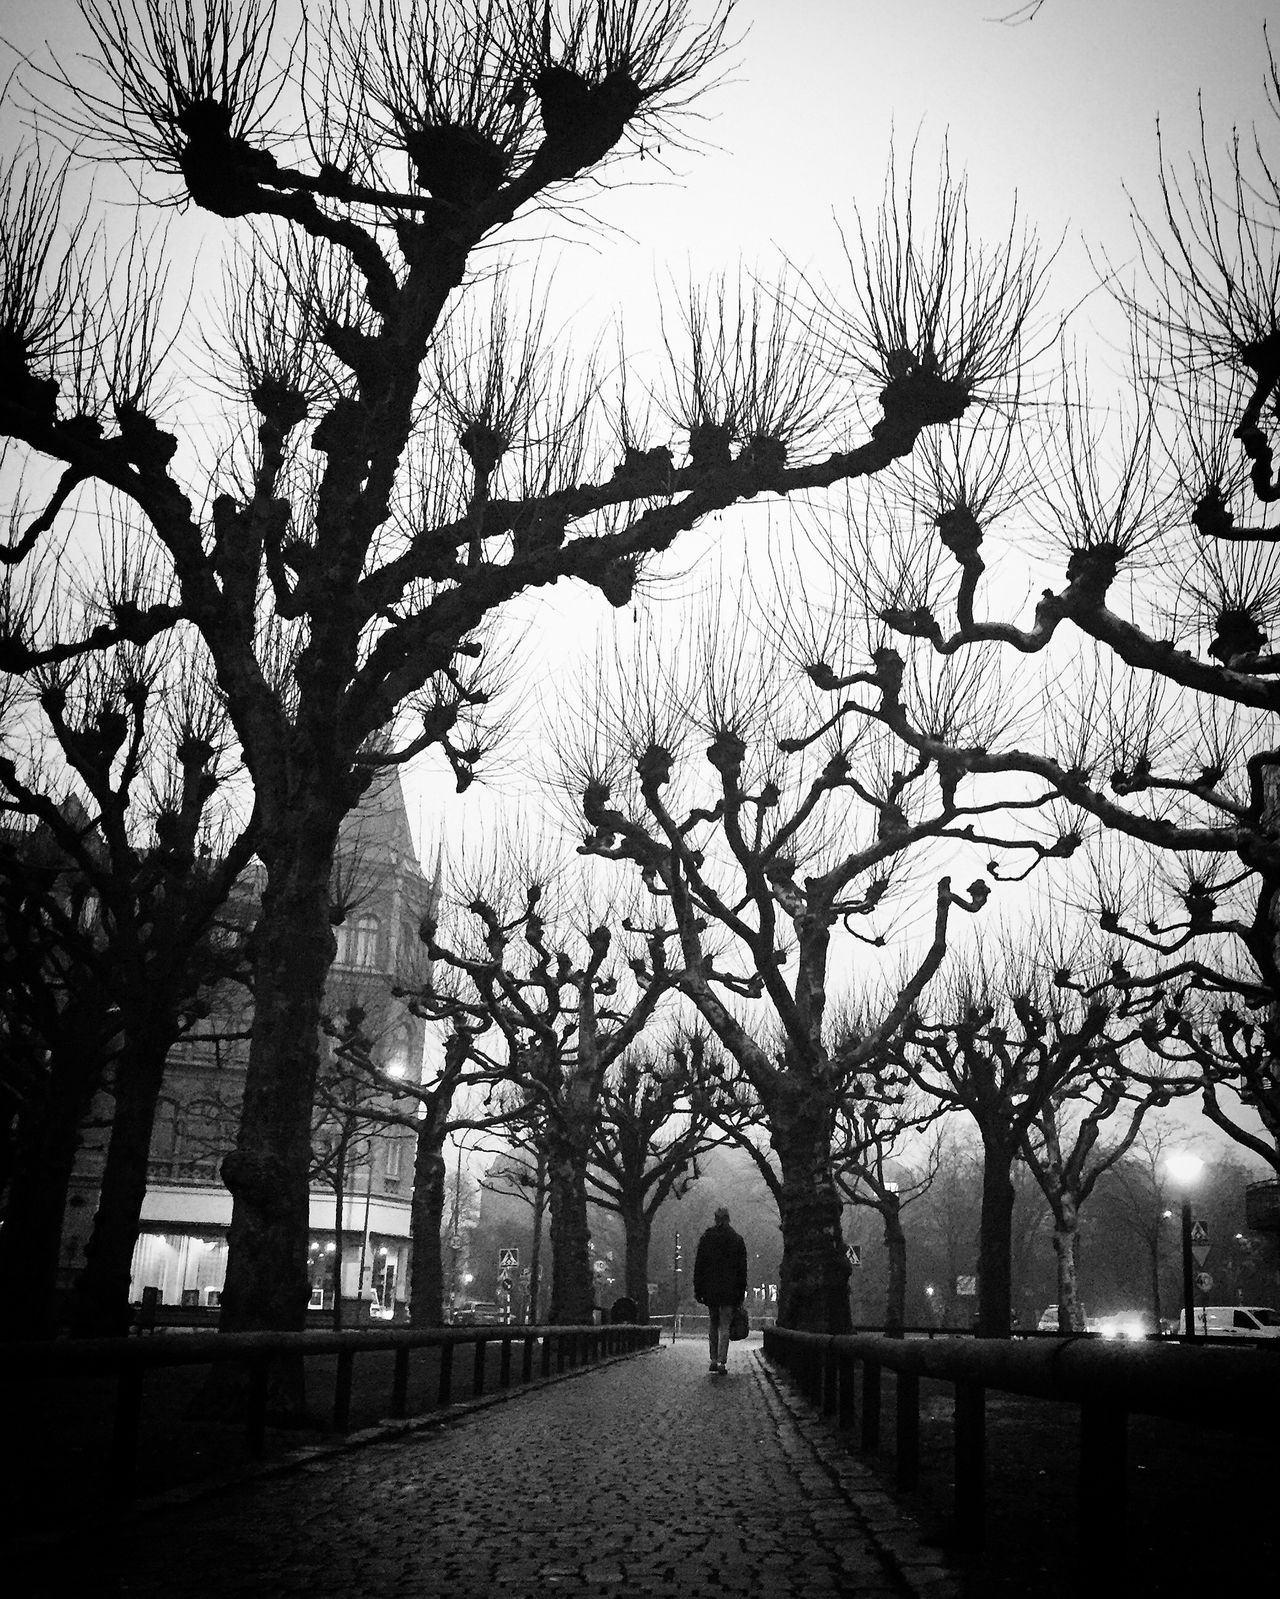 Tree Outdoors Bare Tree One Person Bw_collection Black And White Street Photography Shootermag